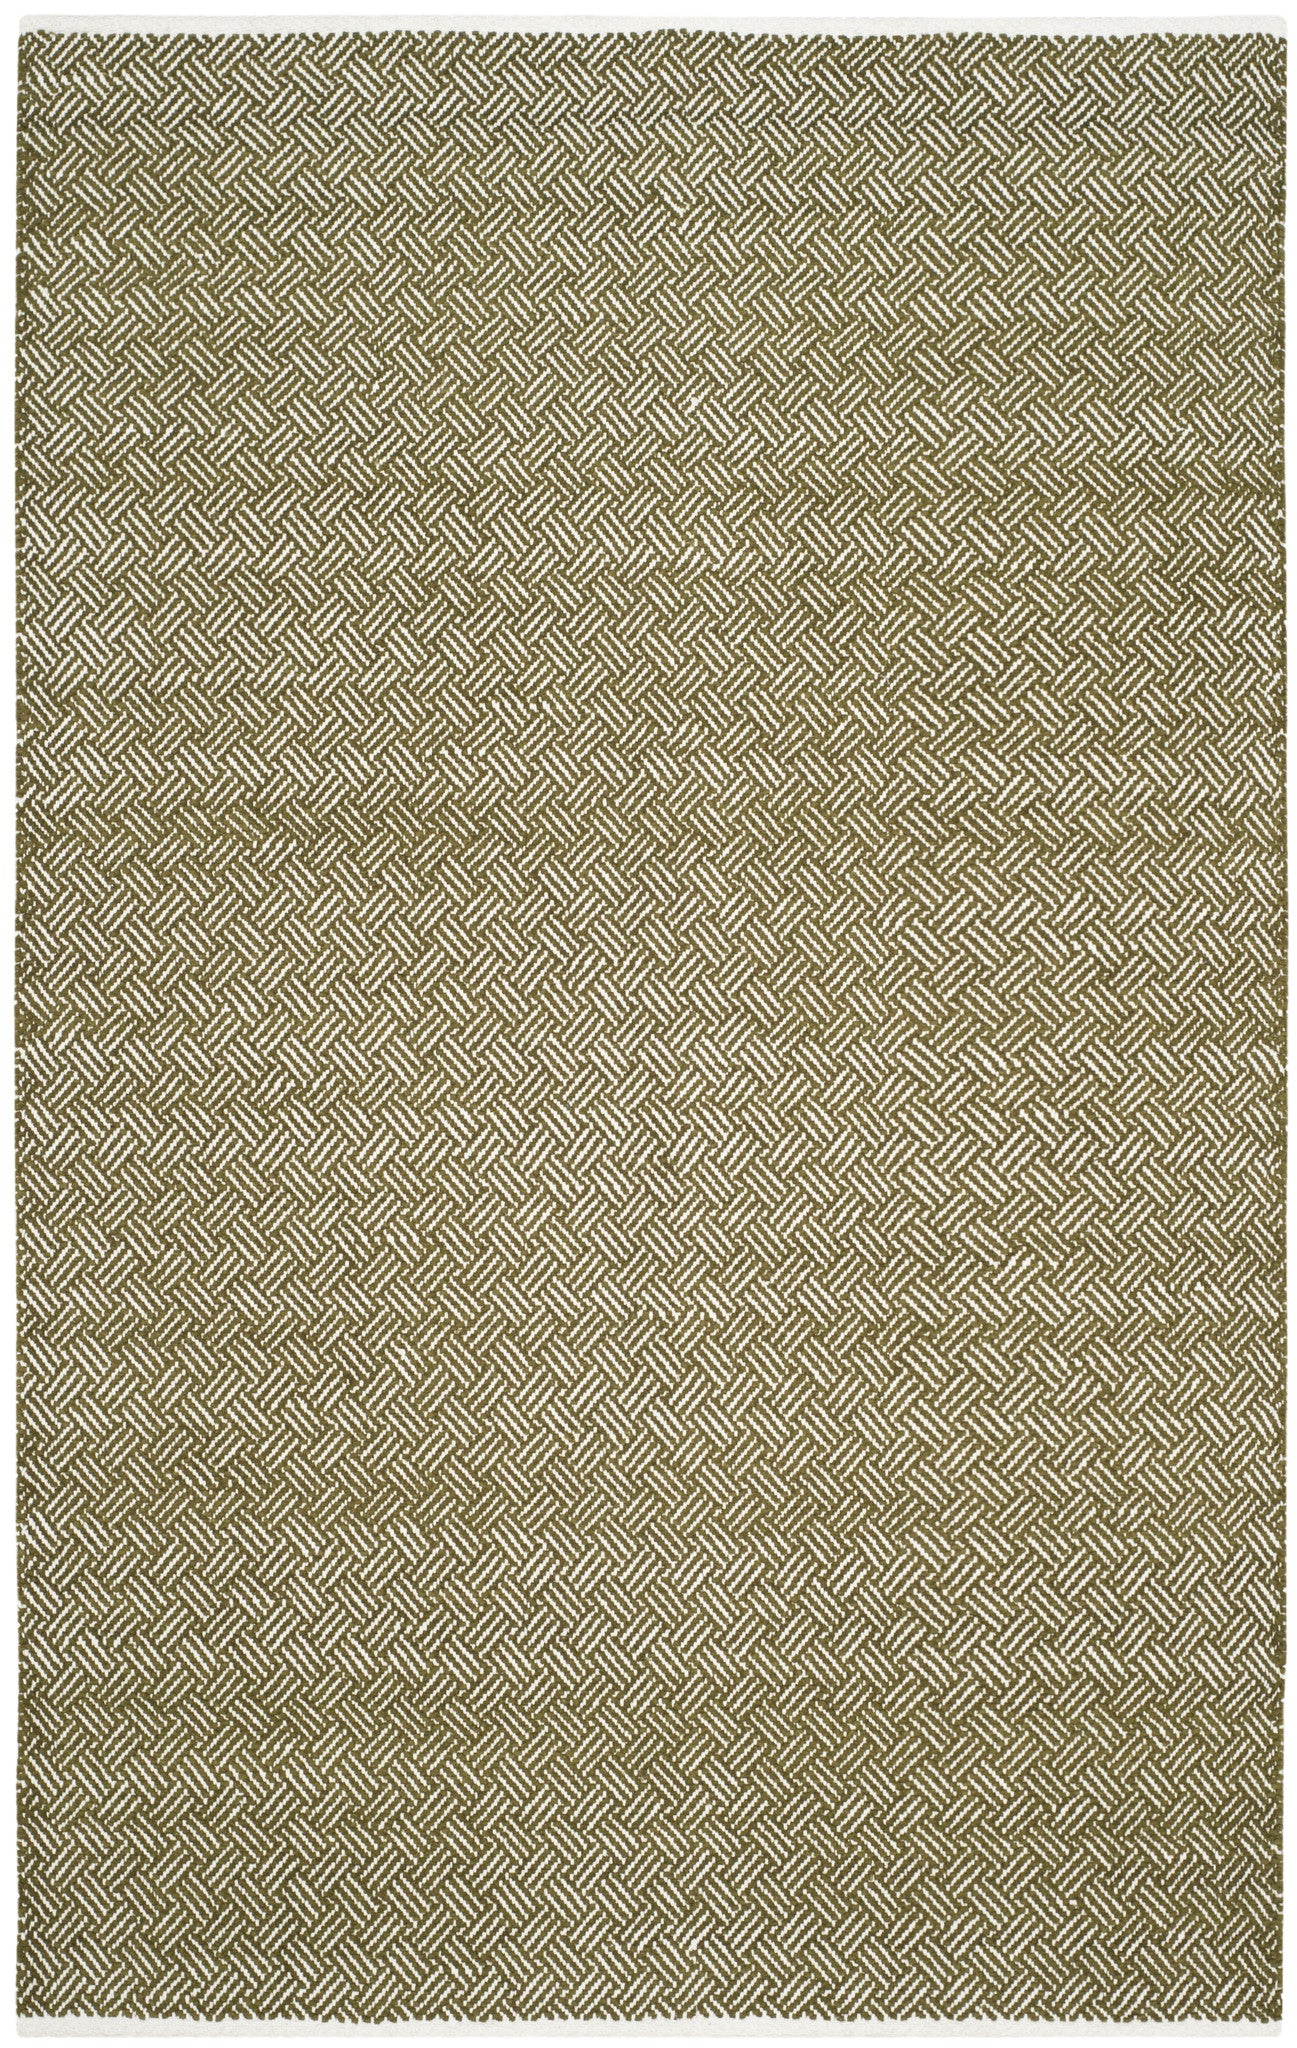 Boston Rug in Olive design by Safavieh